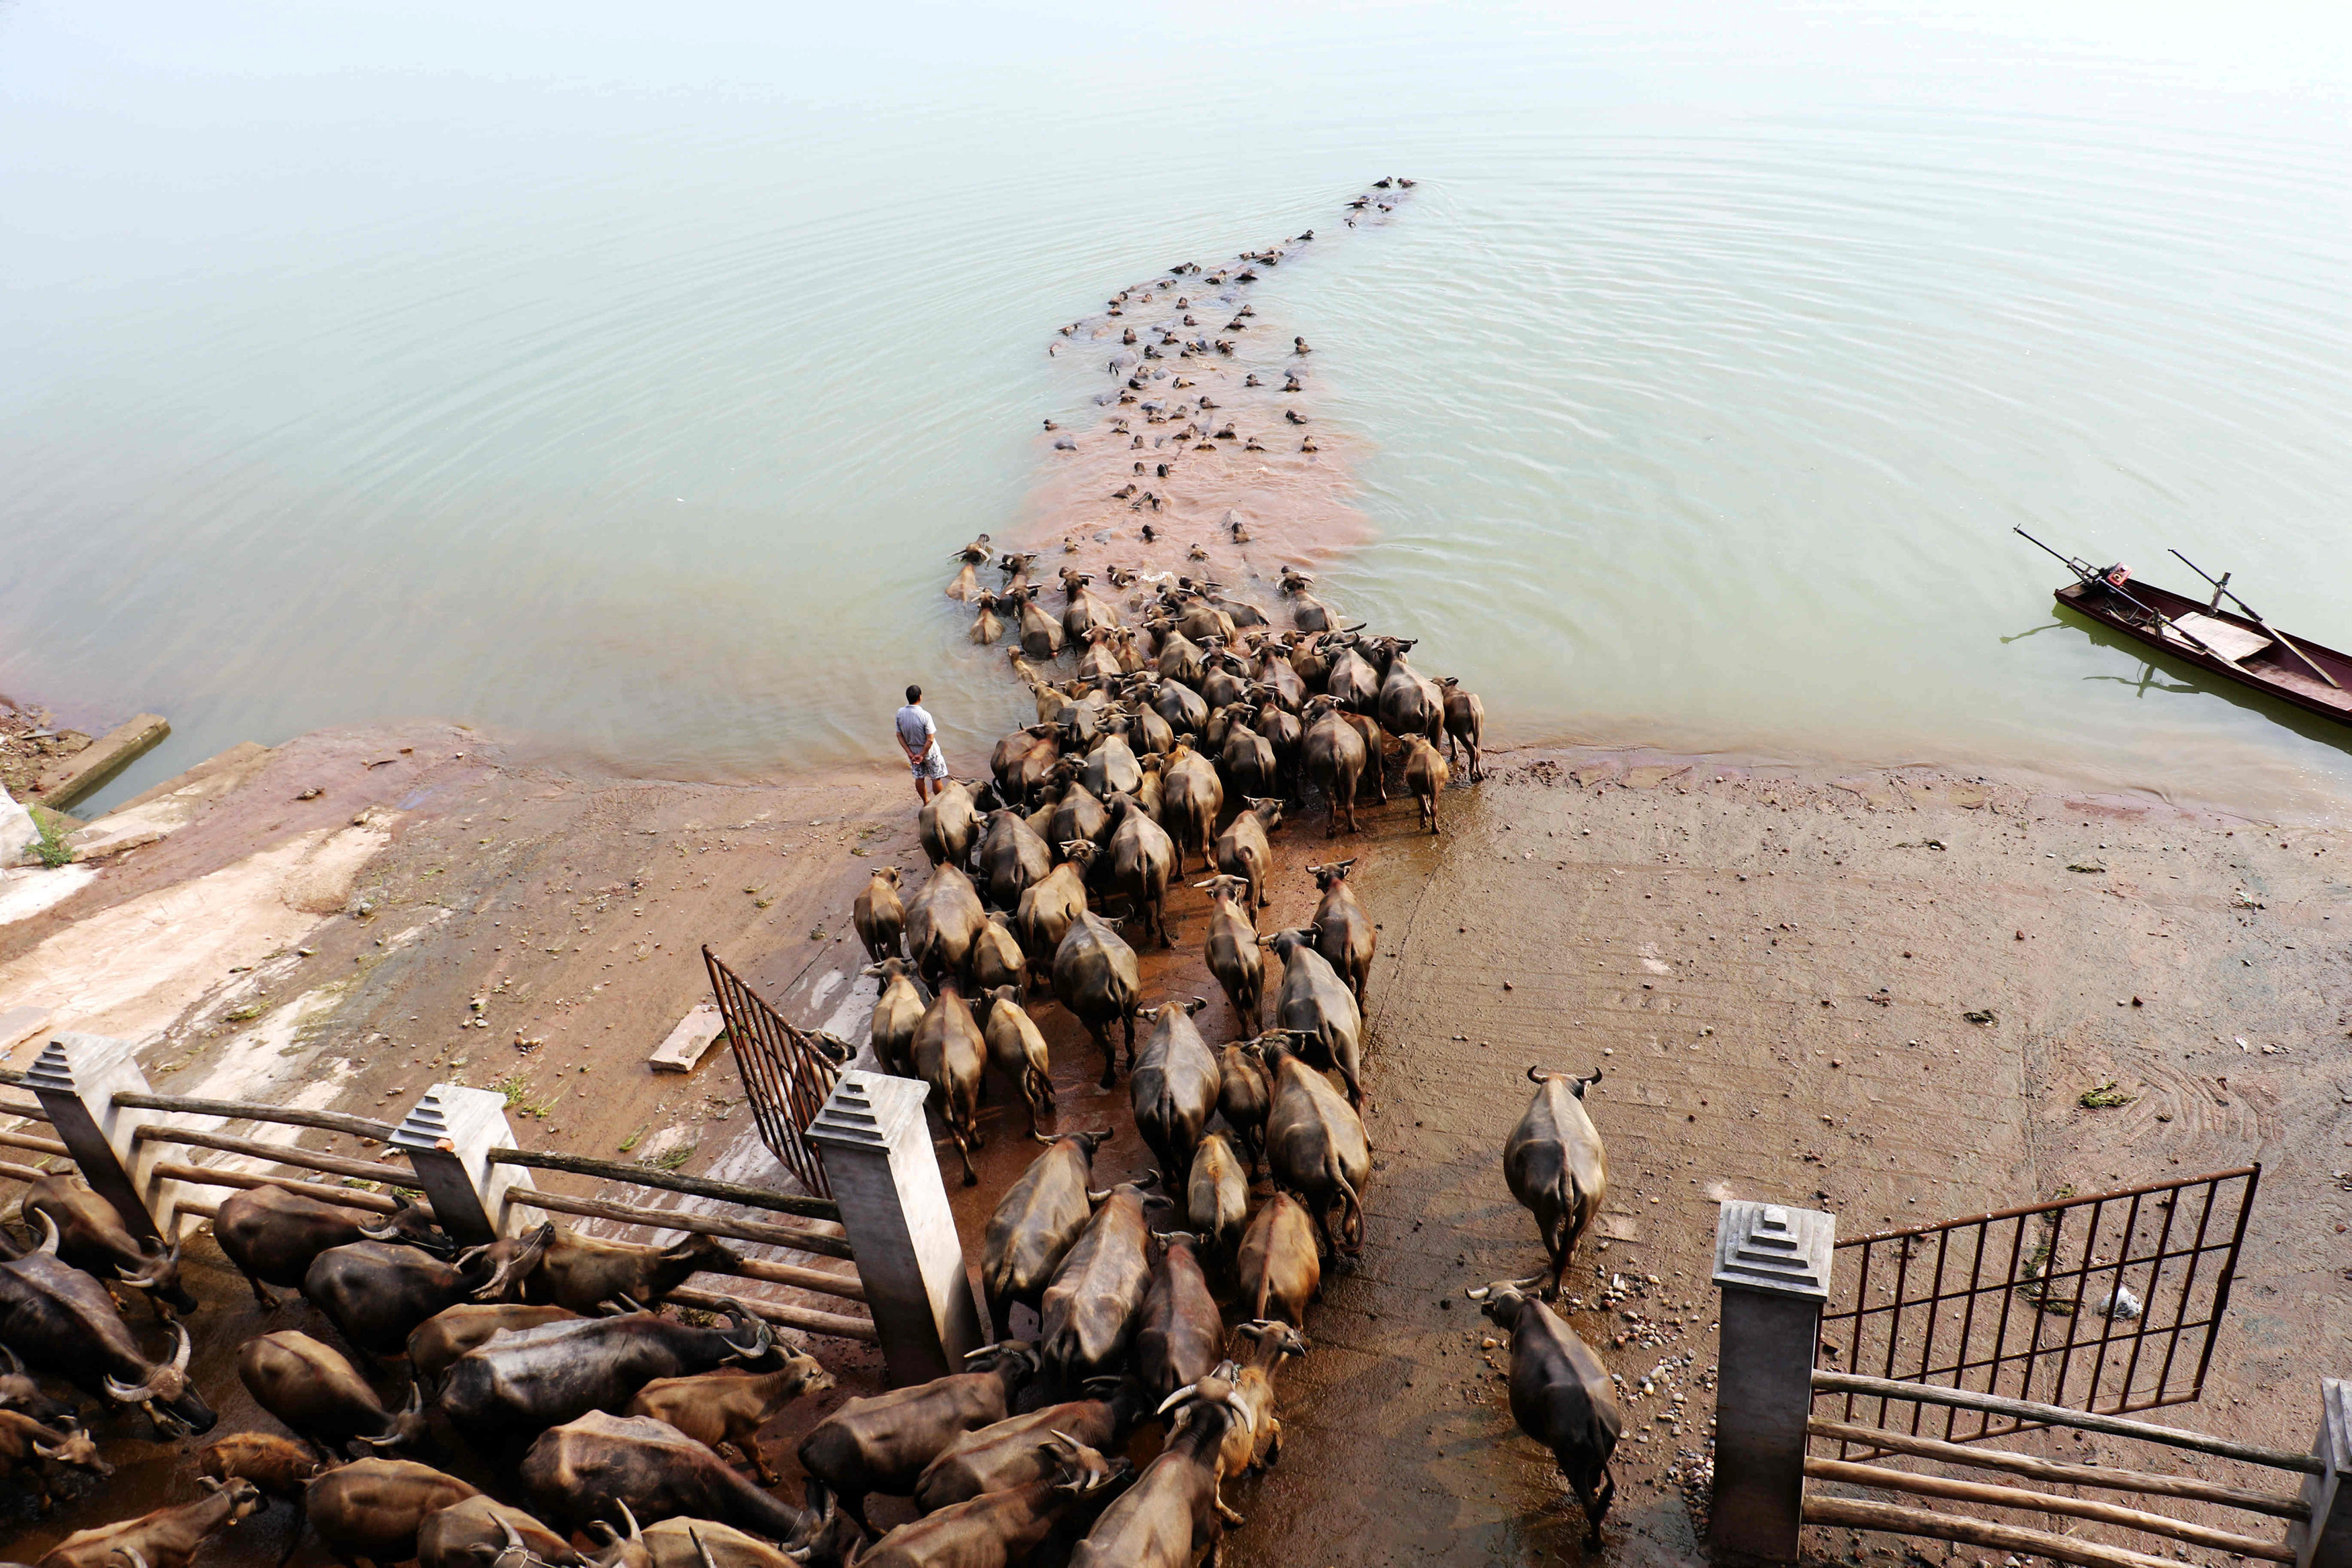 A man watches buffalos cross a river as they head to another grazing area, in Nanchong, Sichuan province, China, August 10, 2016. Picture taken August 10, 2016. China Daily/via REUTERS ATTENTION EDITORS - THIS IMAGE WAS PROVIDED BY A THIRD PARTY. EDITORIAL USE ONLY. CHINA OUT. NO COMMERCIAL OR EDITORIAL SALES IN CHINA.